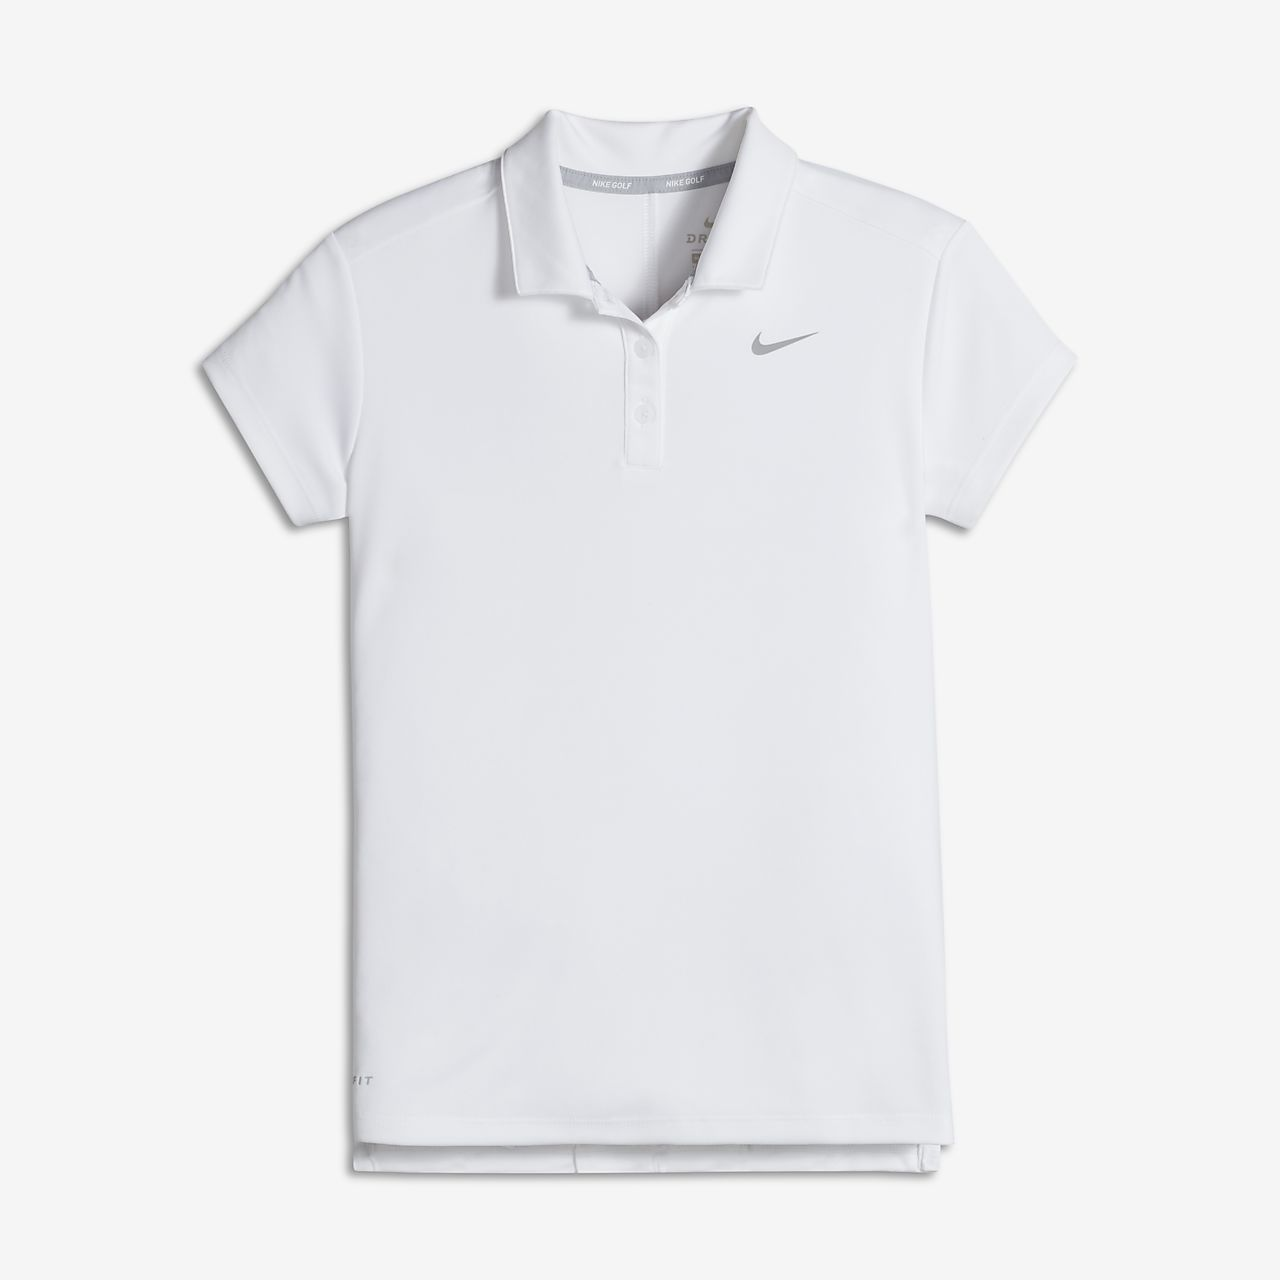 Nike Dri-FIT Victory Older Kids' (Girls') Golf Polo